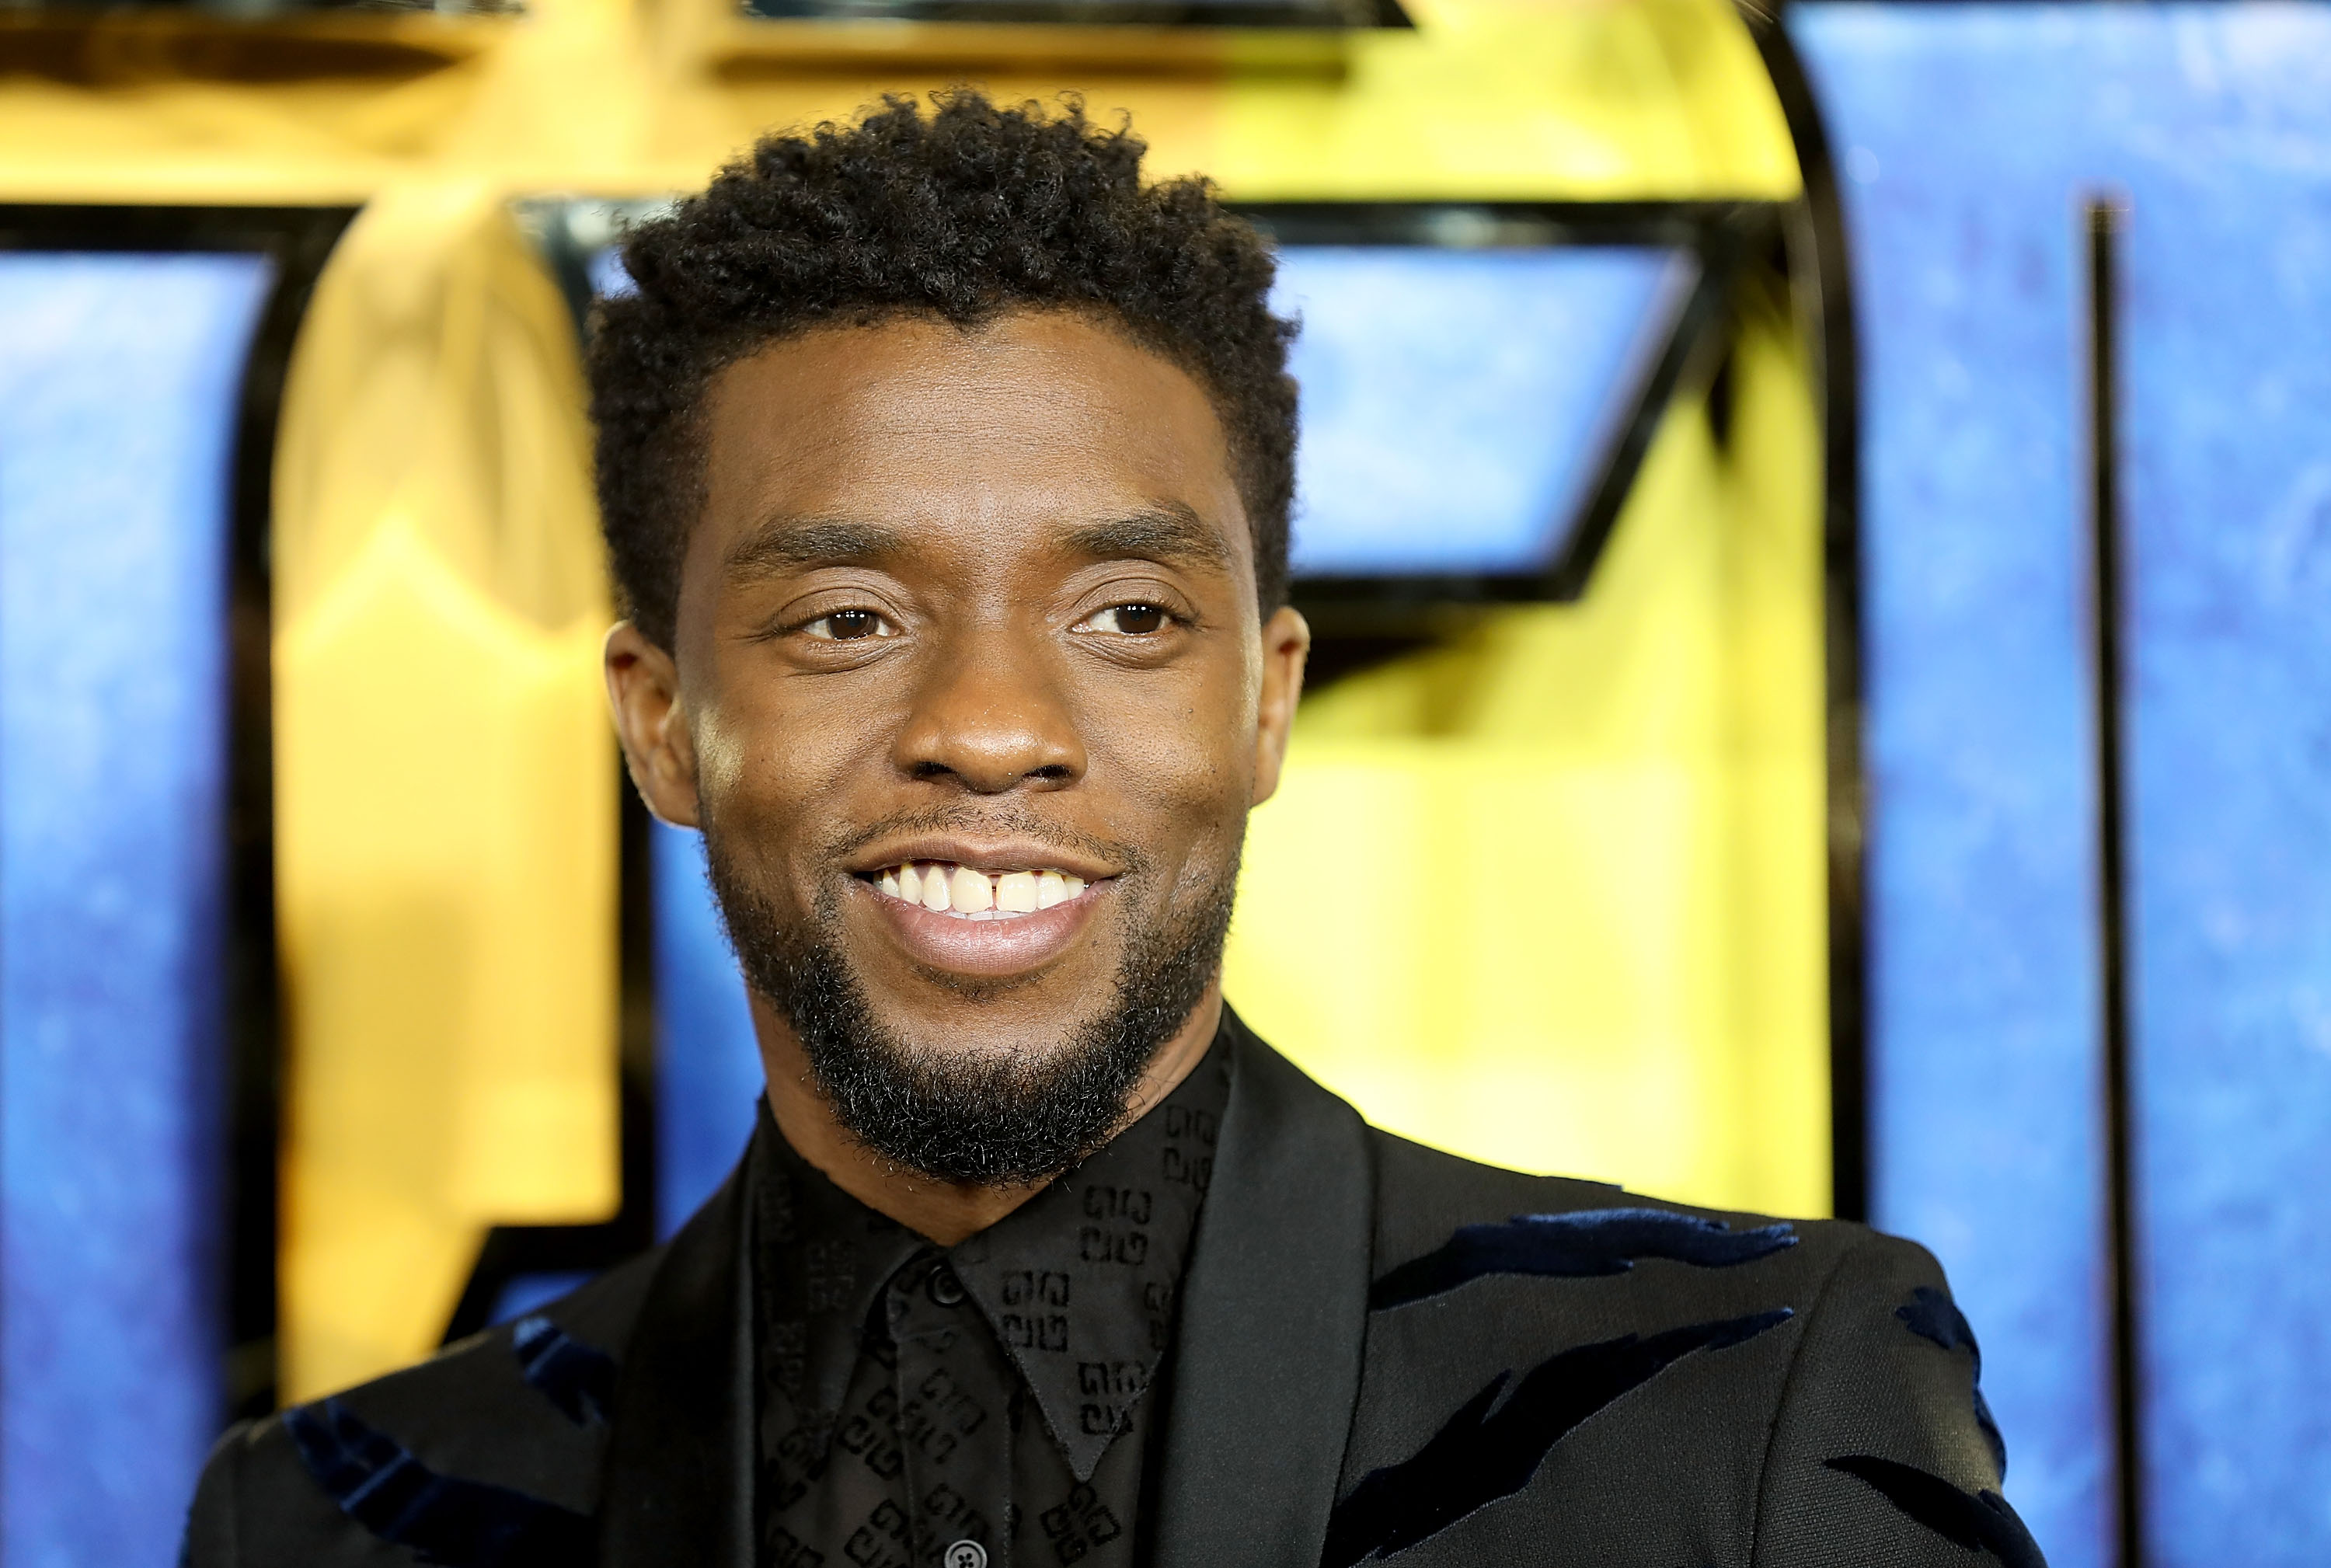 Eat Like Chadwick Boseman: 9 Foods Inspired by the Black Panther Star's Diet